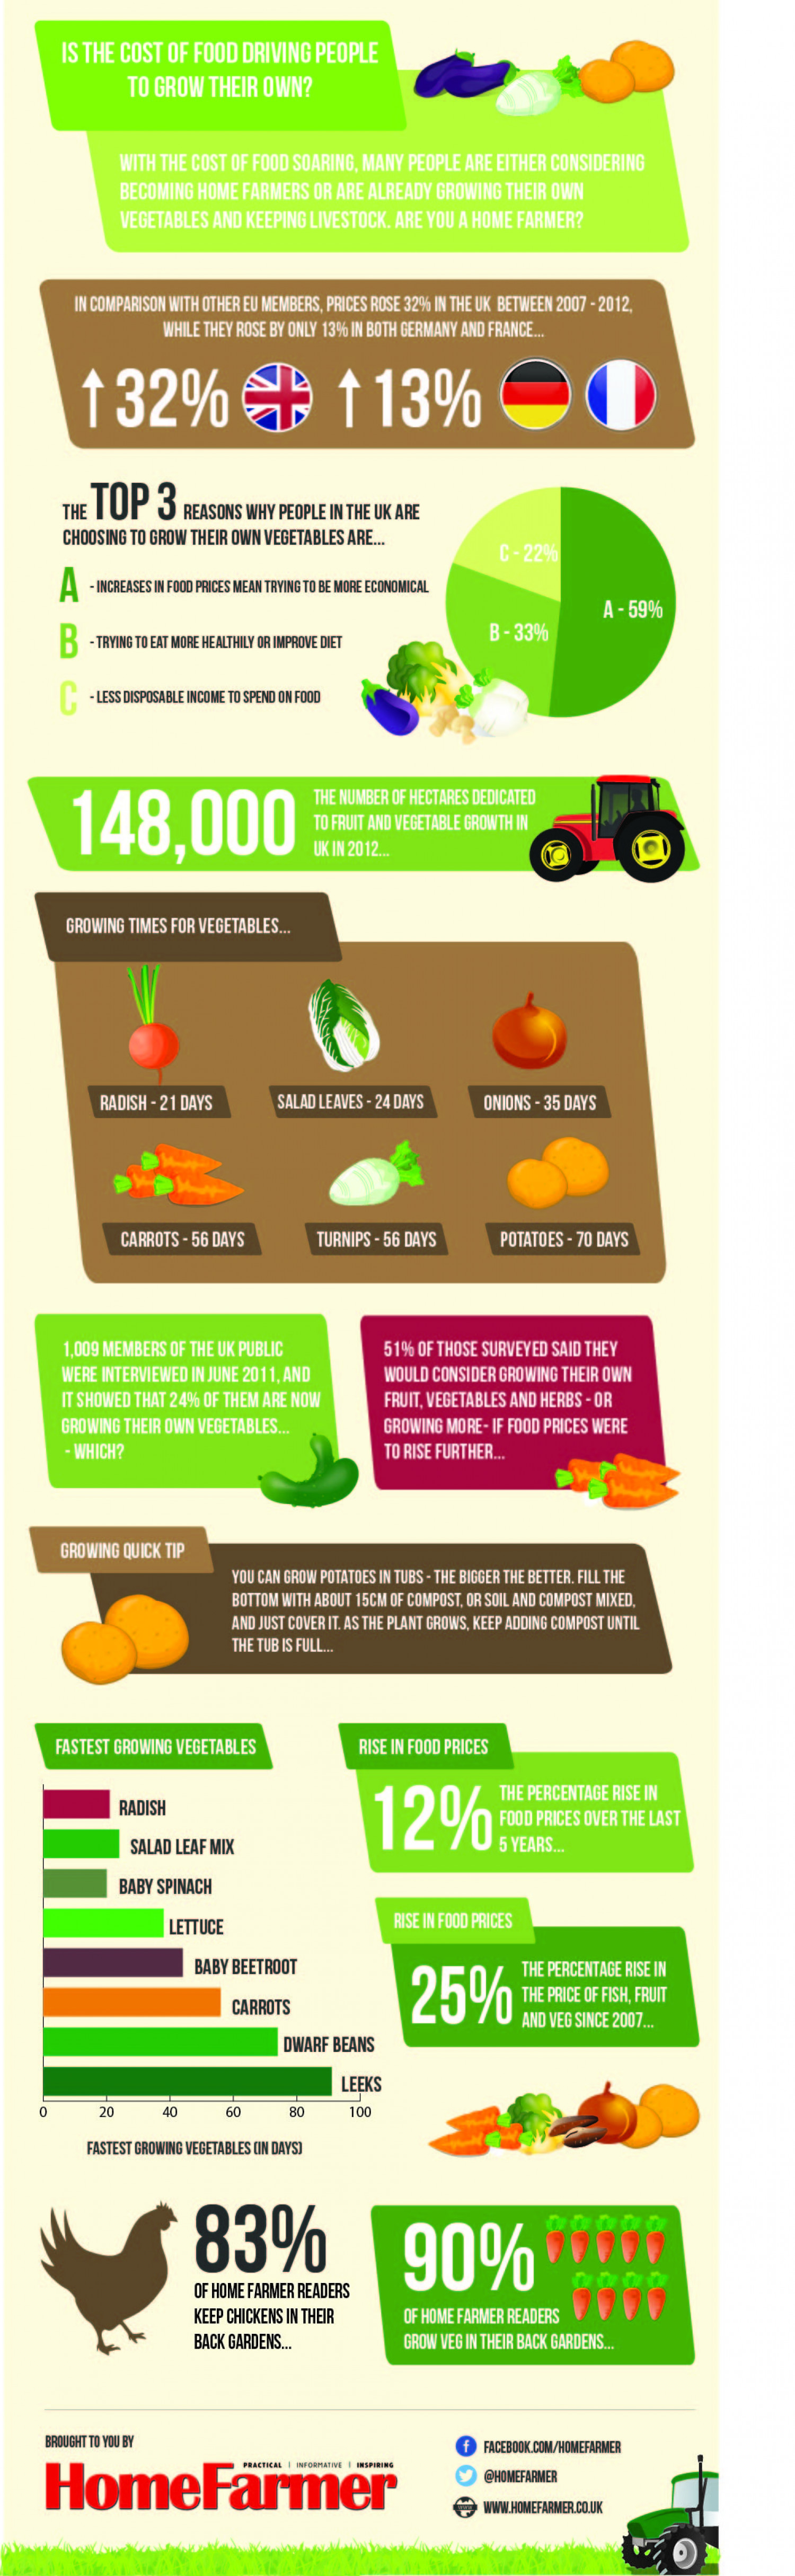 Are rising food prices forcing more people to consider growing their own food? Infographic